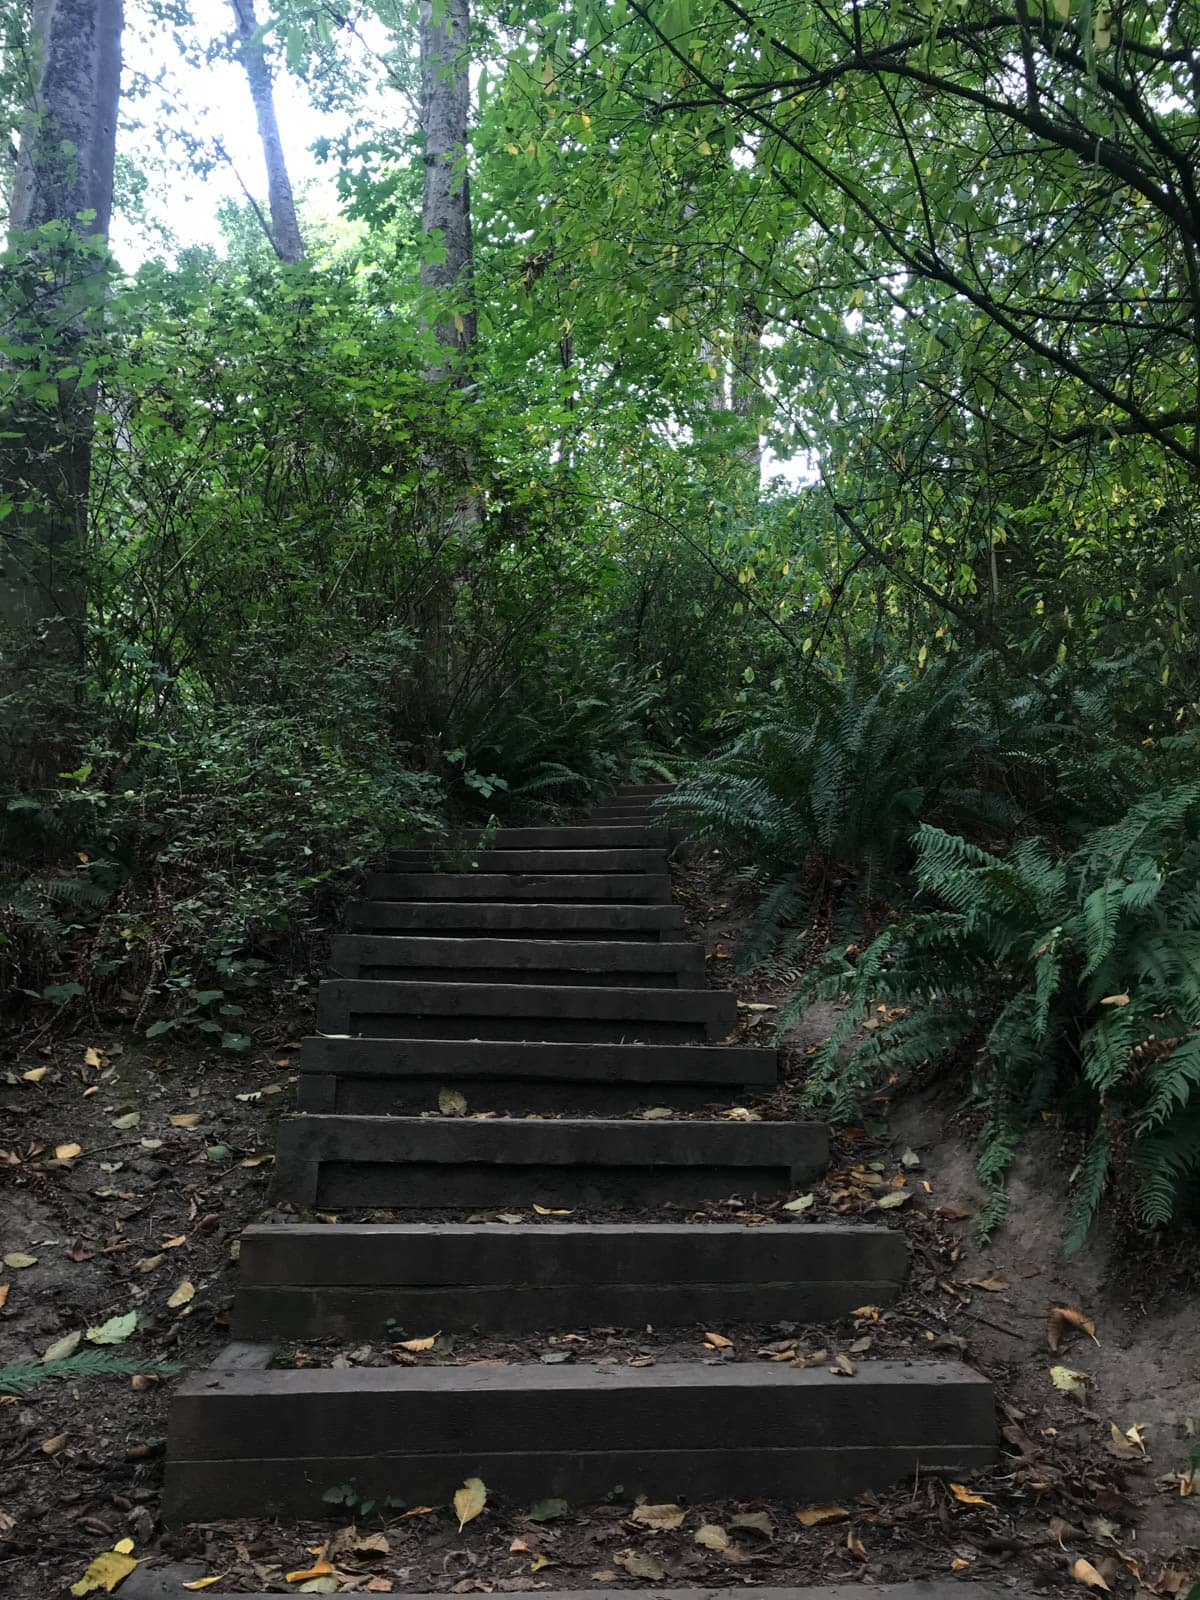 Wooden stairs as part of a walking trail, leading upwards. The canopy provides adequate shade.